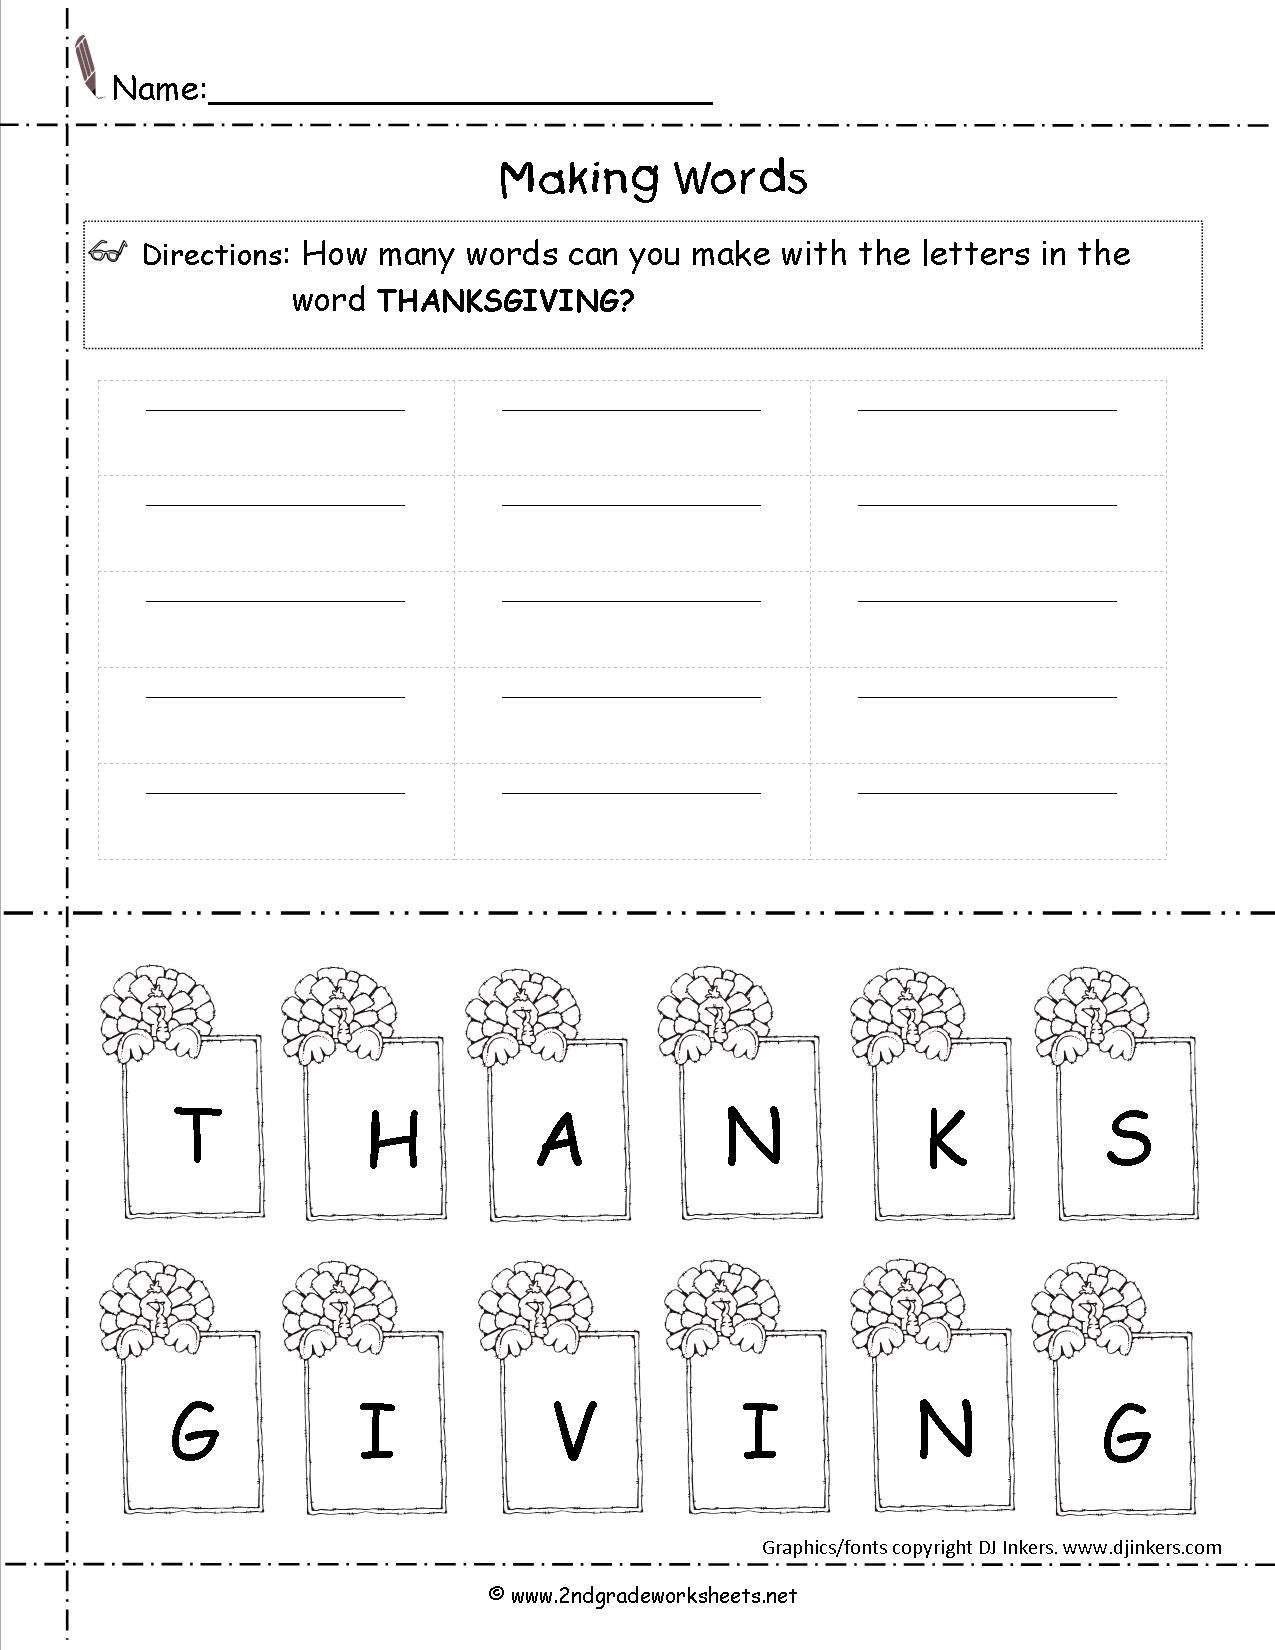 Thanksgiving Printouts And Worksheets - Free Printable Thanksgiving | Free Printable Thanksgiving Math Worksheets For 3Rd Grade